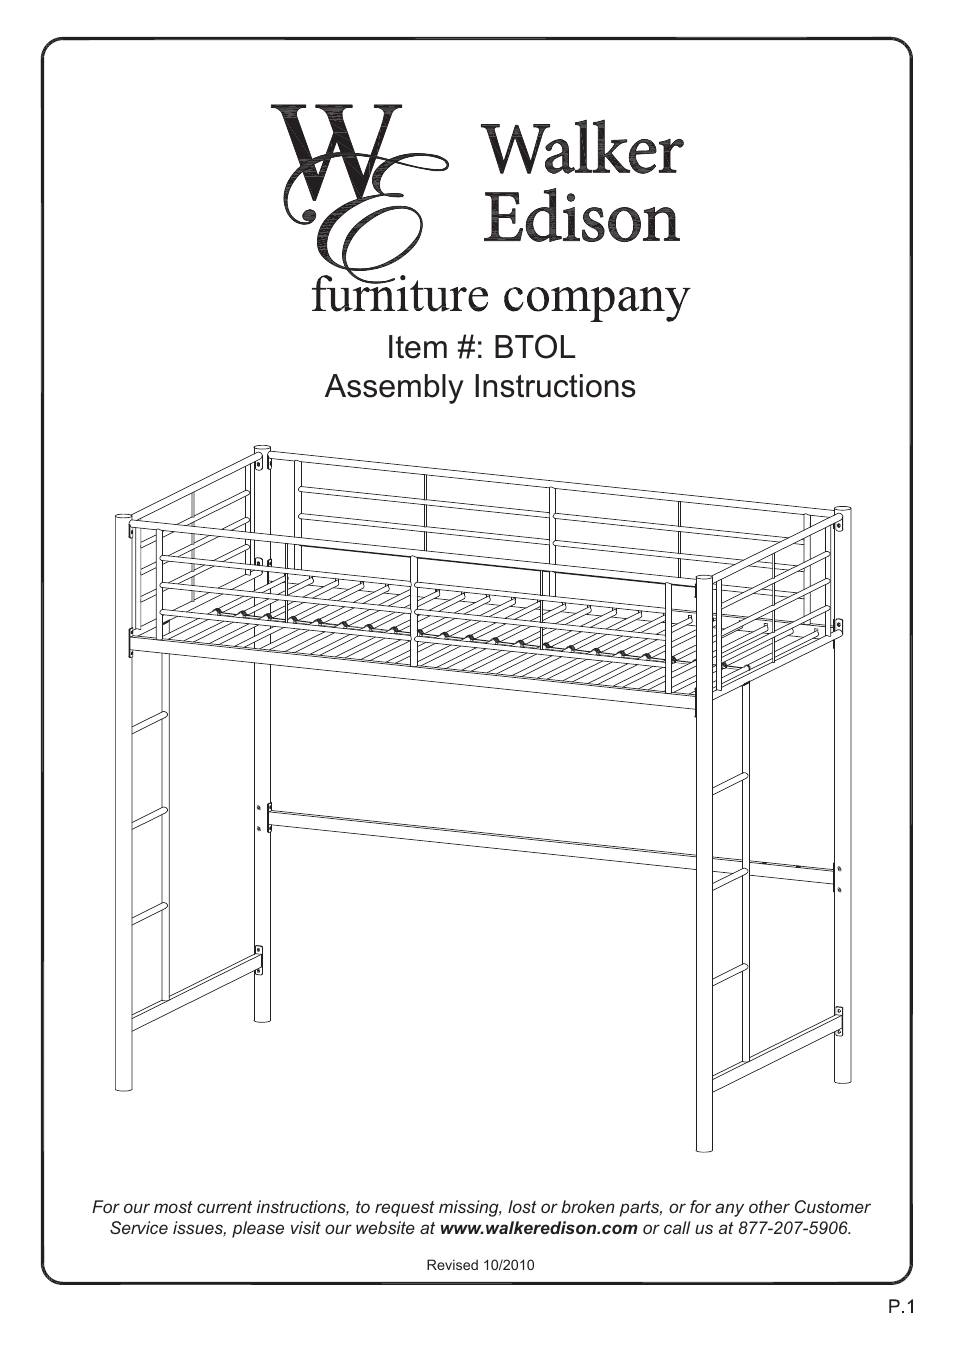 Walker Edison Furniture Btol Sunrise Twin Loft Metal Bunk Bed User